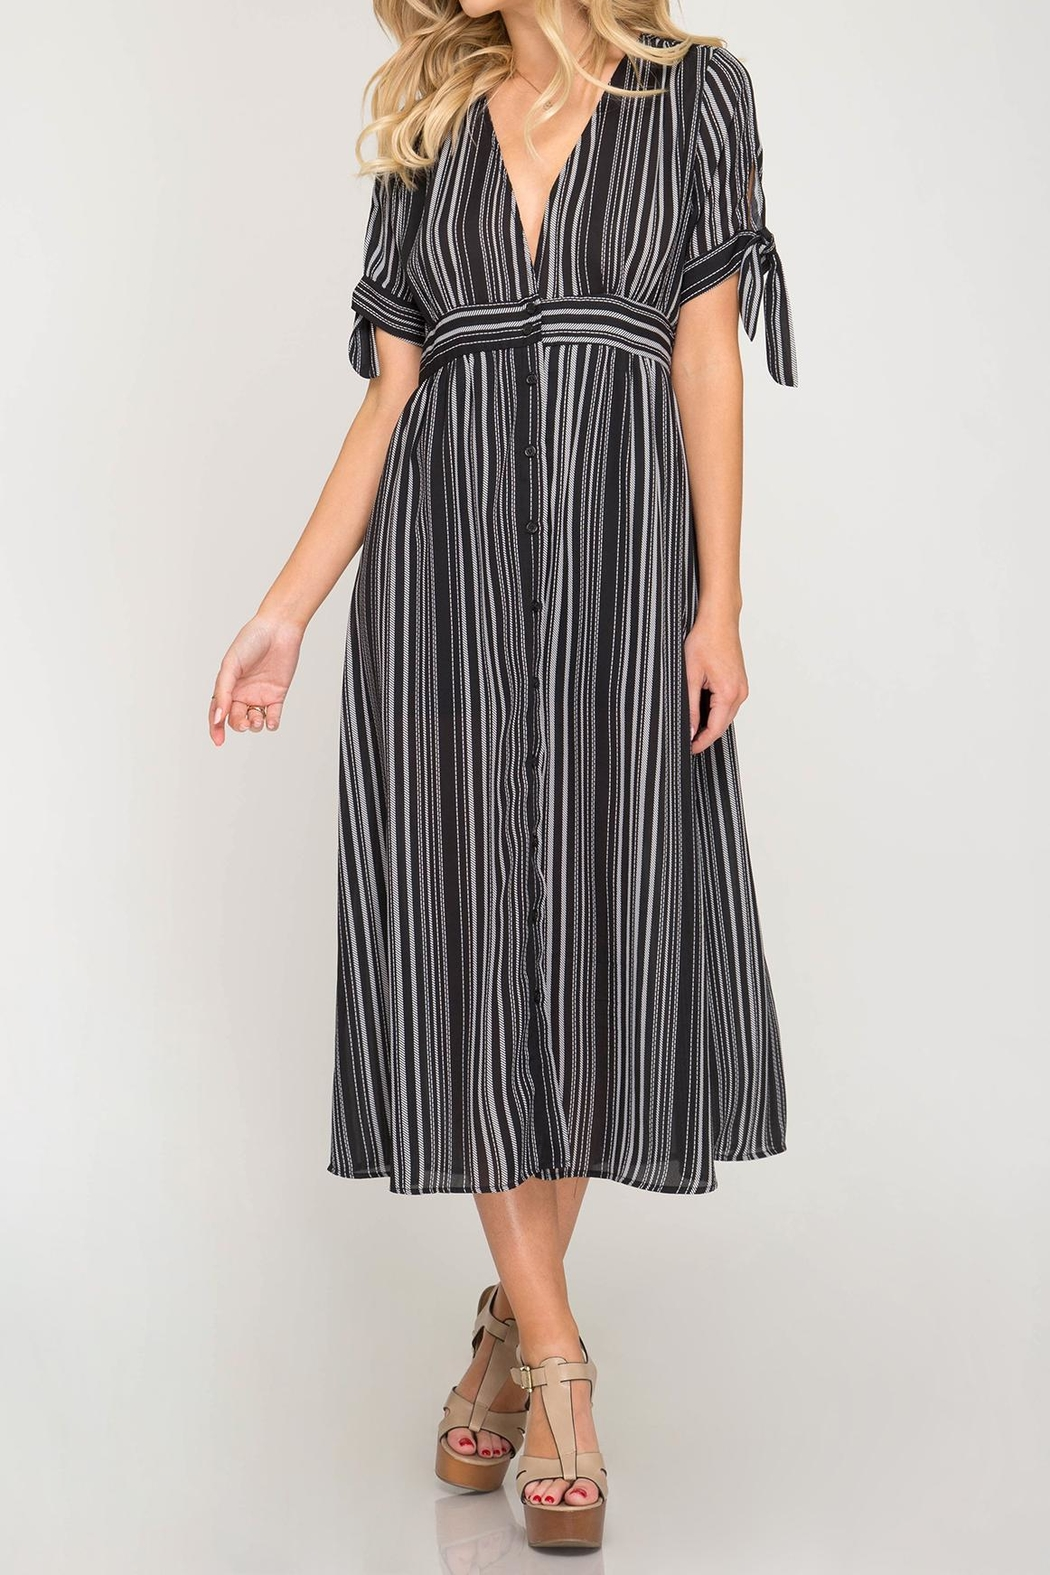 She + Sky Vertical Striped Dress - Main Image